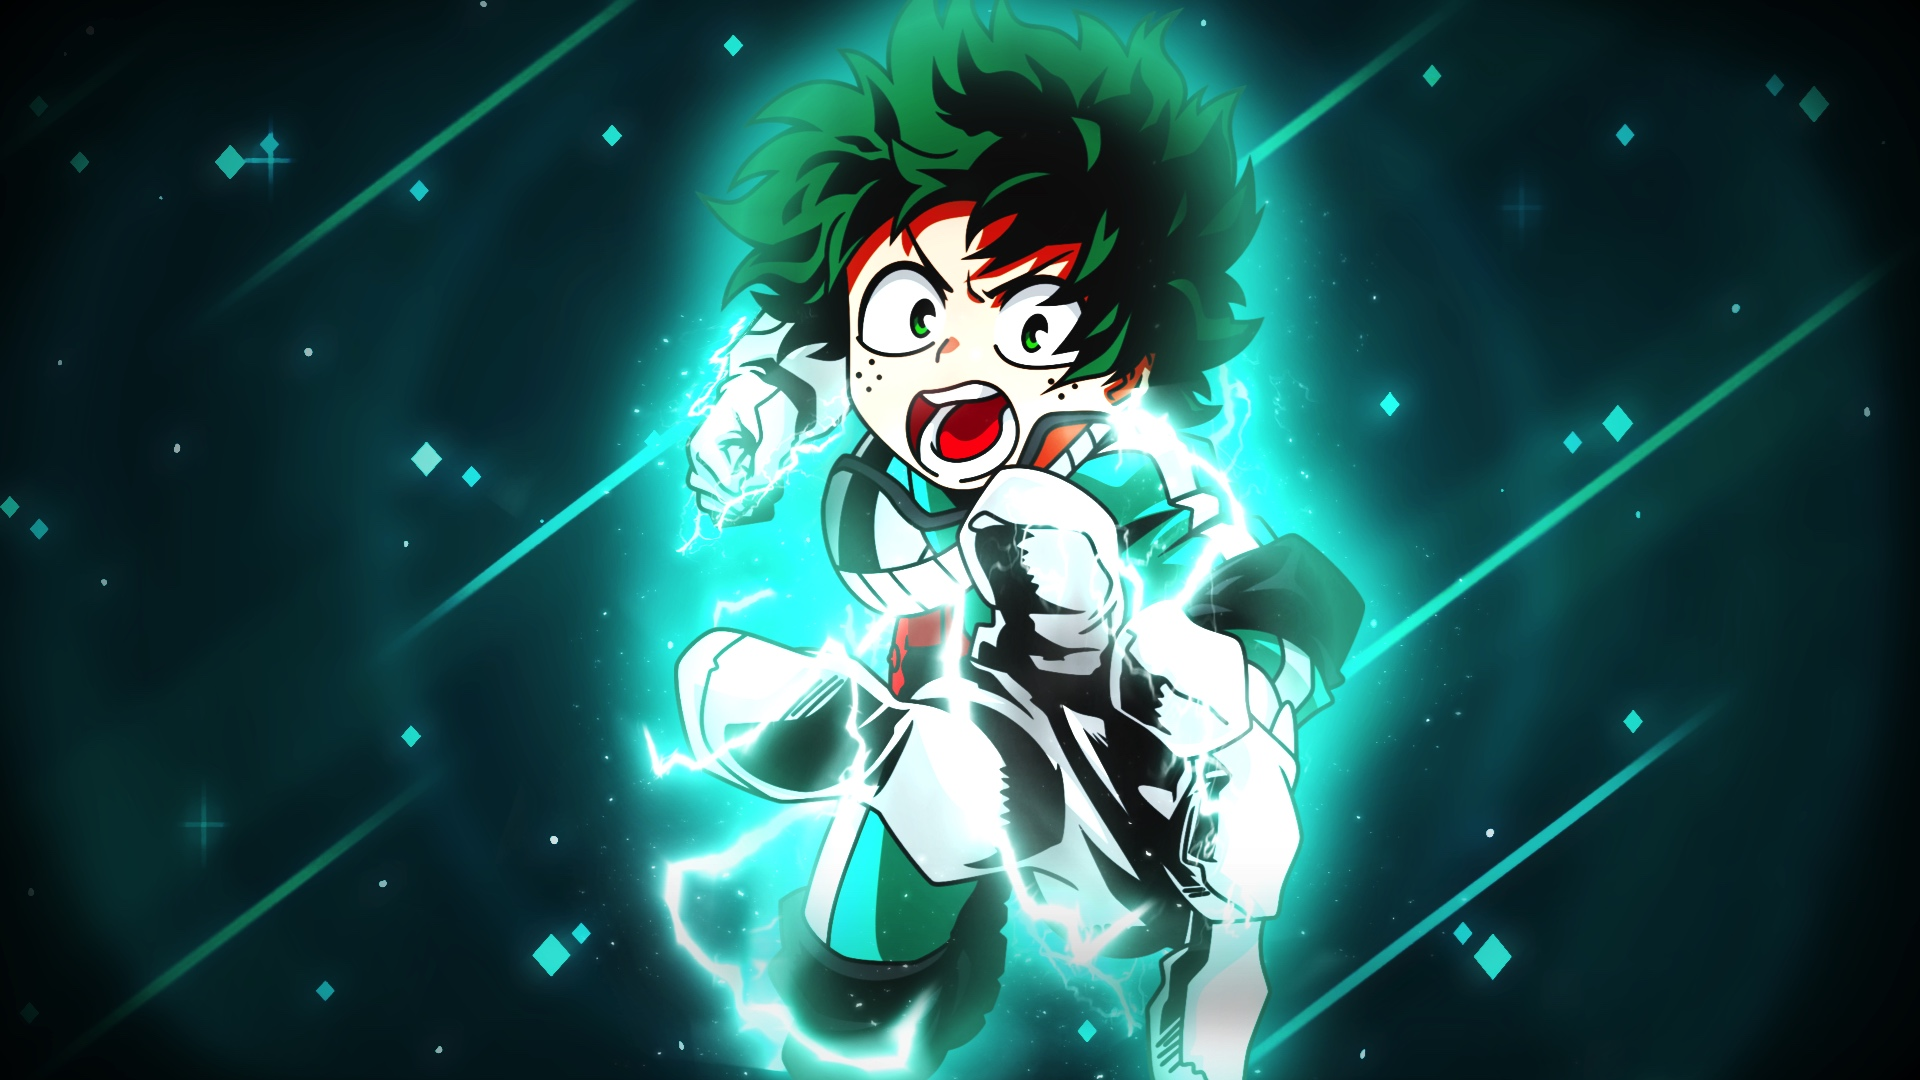 Some of us work at our computers for many hours during the day and night, but there's no reason you can't bring a little fun and charm to your desk by personalizing your computer's wallpaper. Desktop Wallpaper Izuku Midoriya, Green Hair, Angry, Anime ...